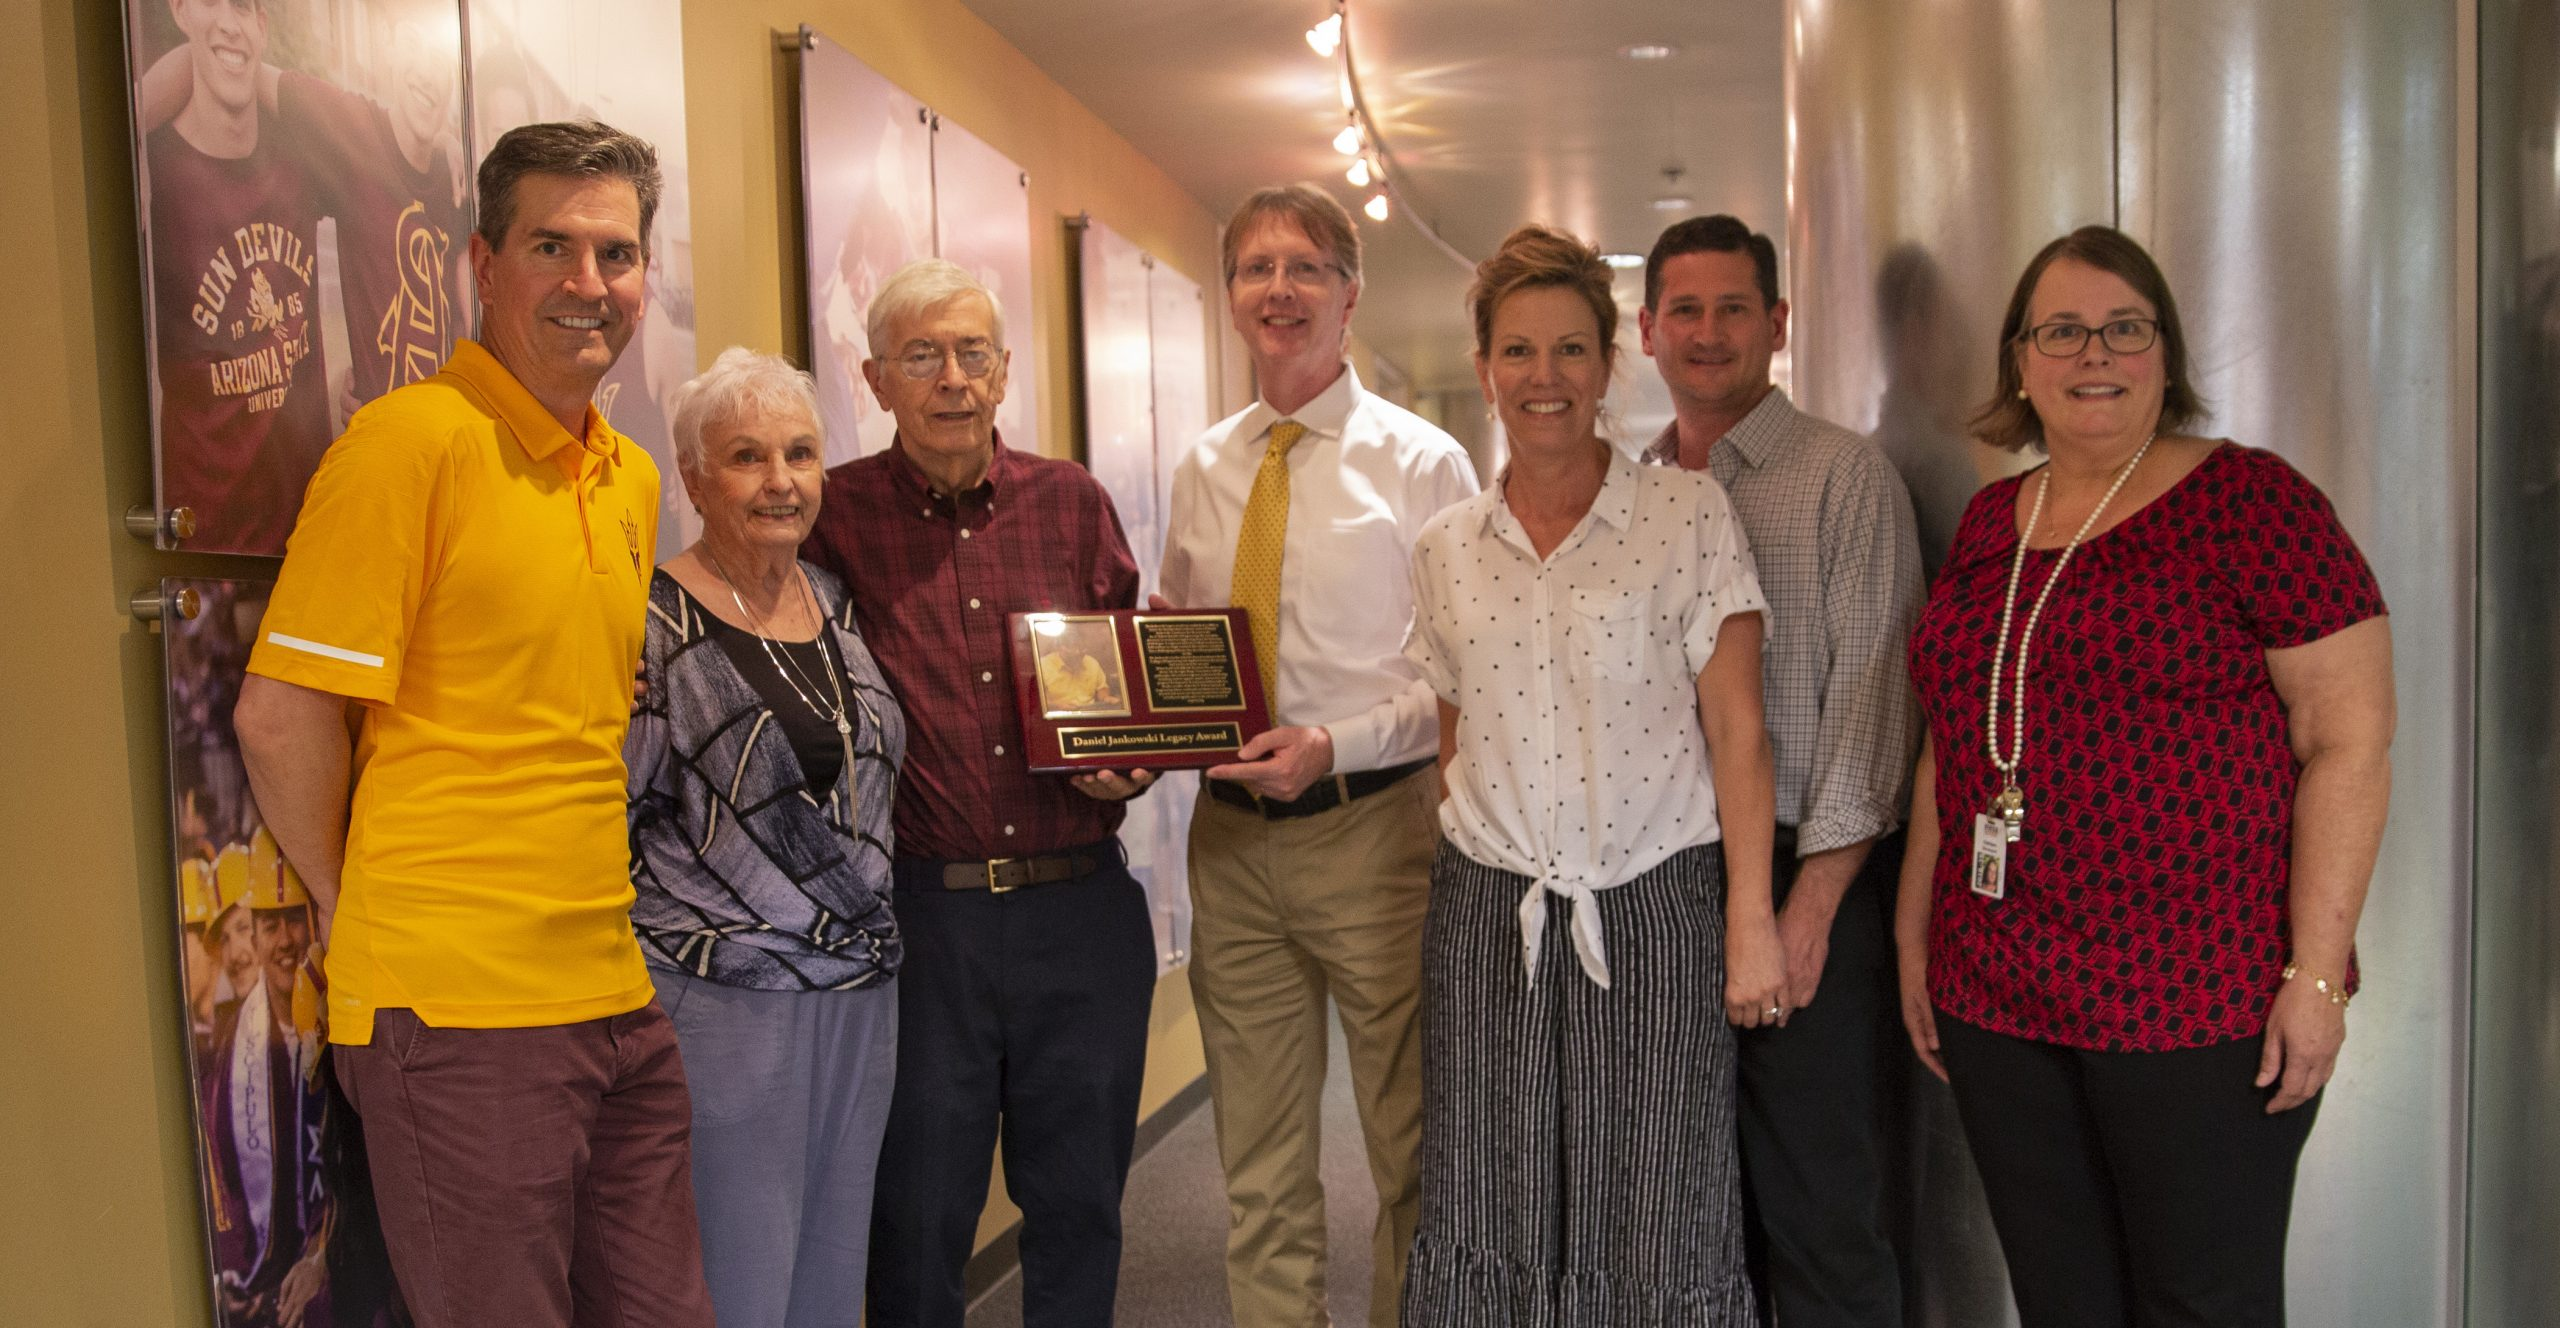 Photo of seven people in a hallway posing with a Jankowski Legacy Award plaque